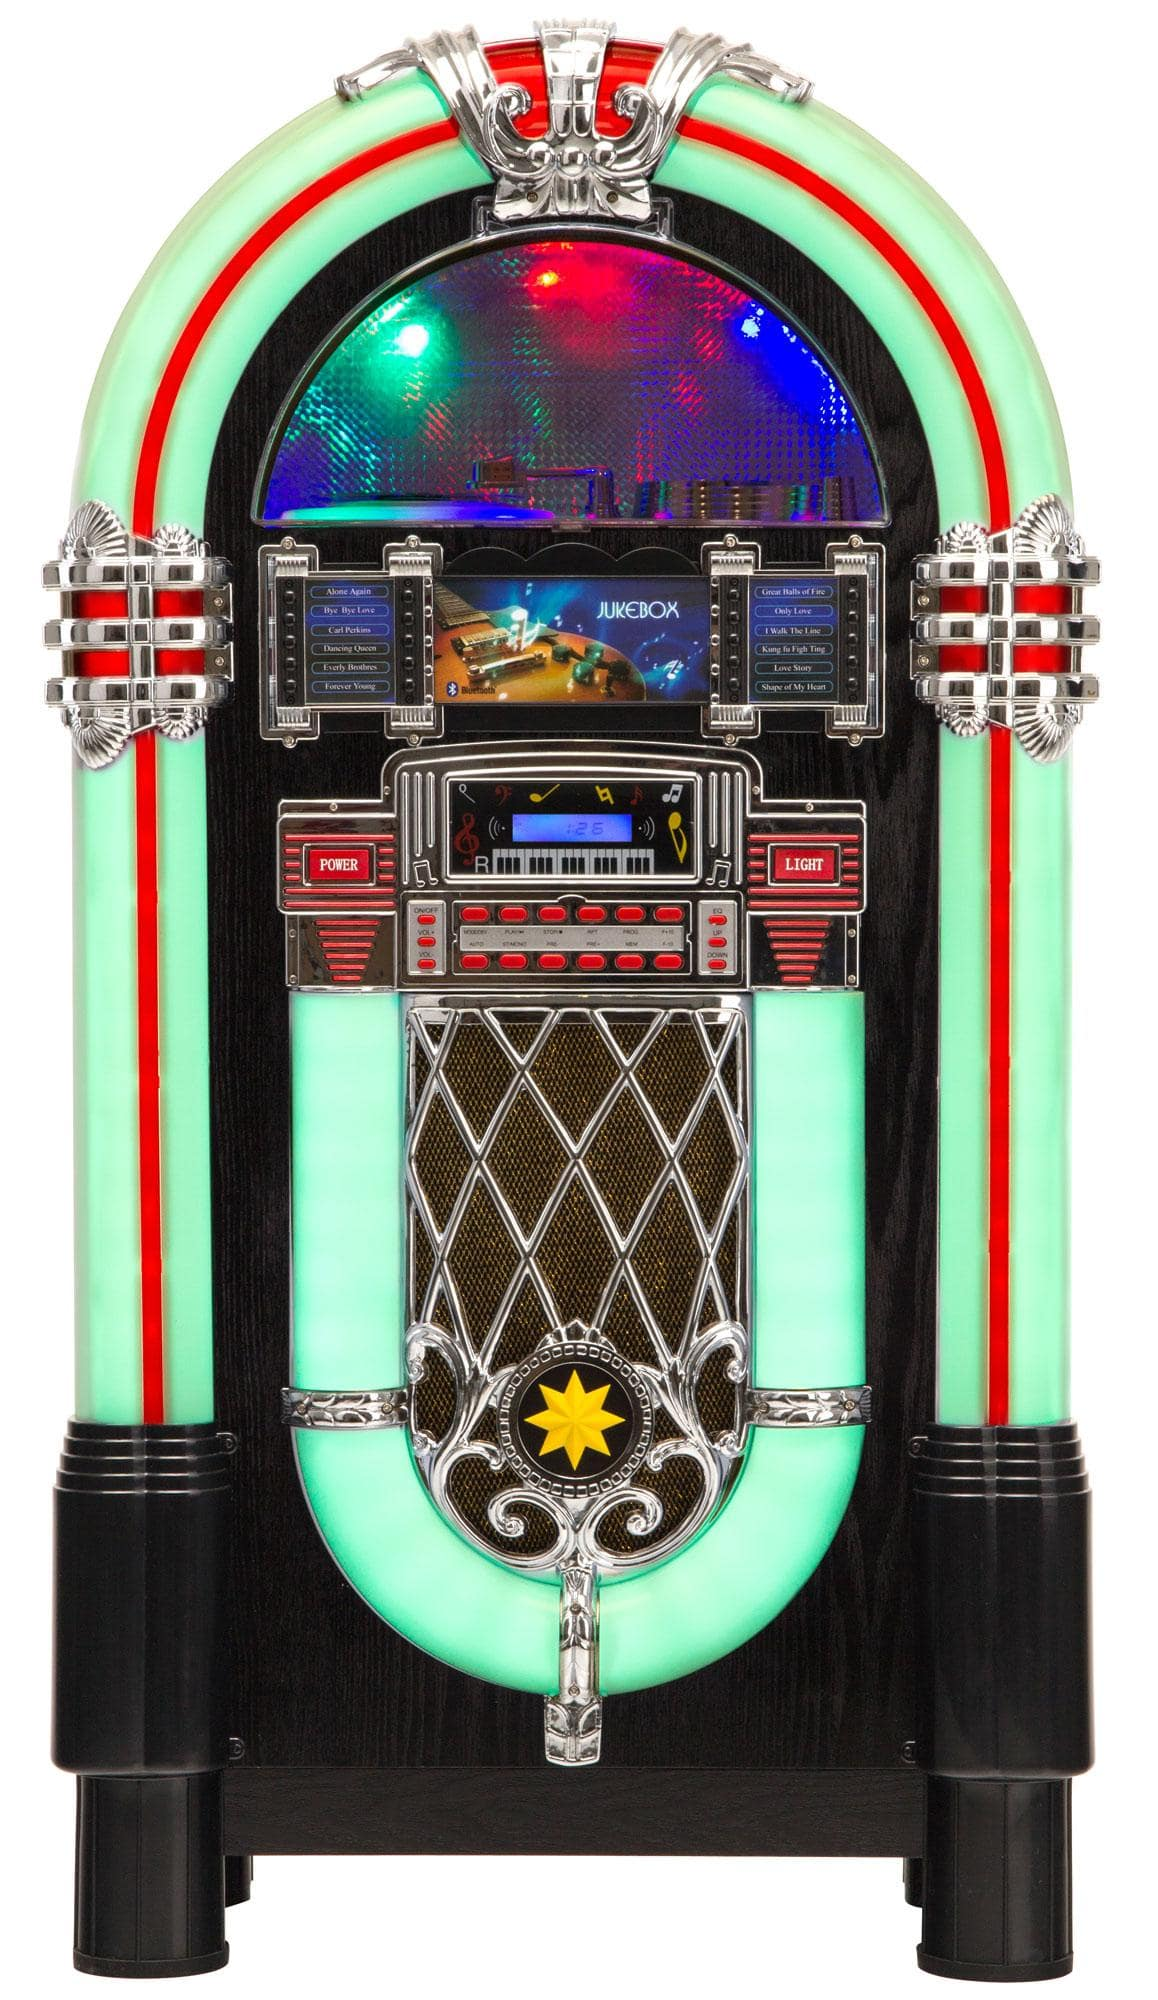 Lacoon GoldenAge 40er/50er Jahre Jukebox mit CD, USB, MP3 Player ...